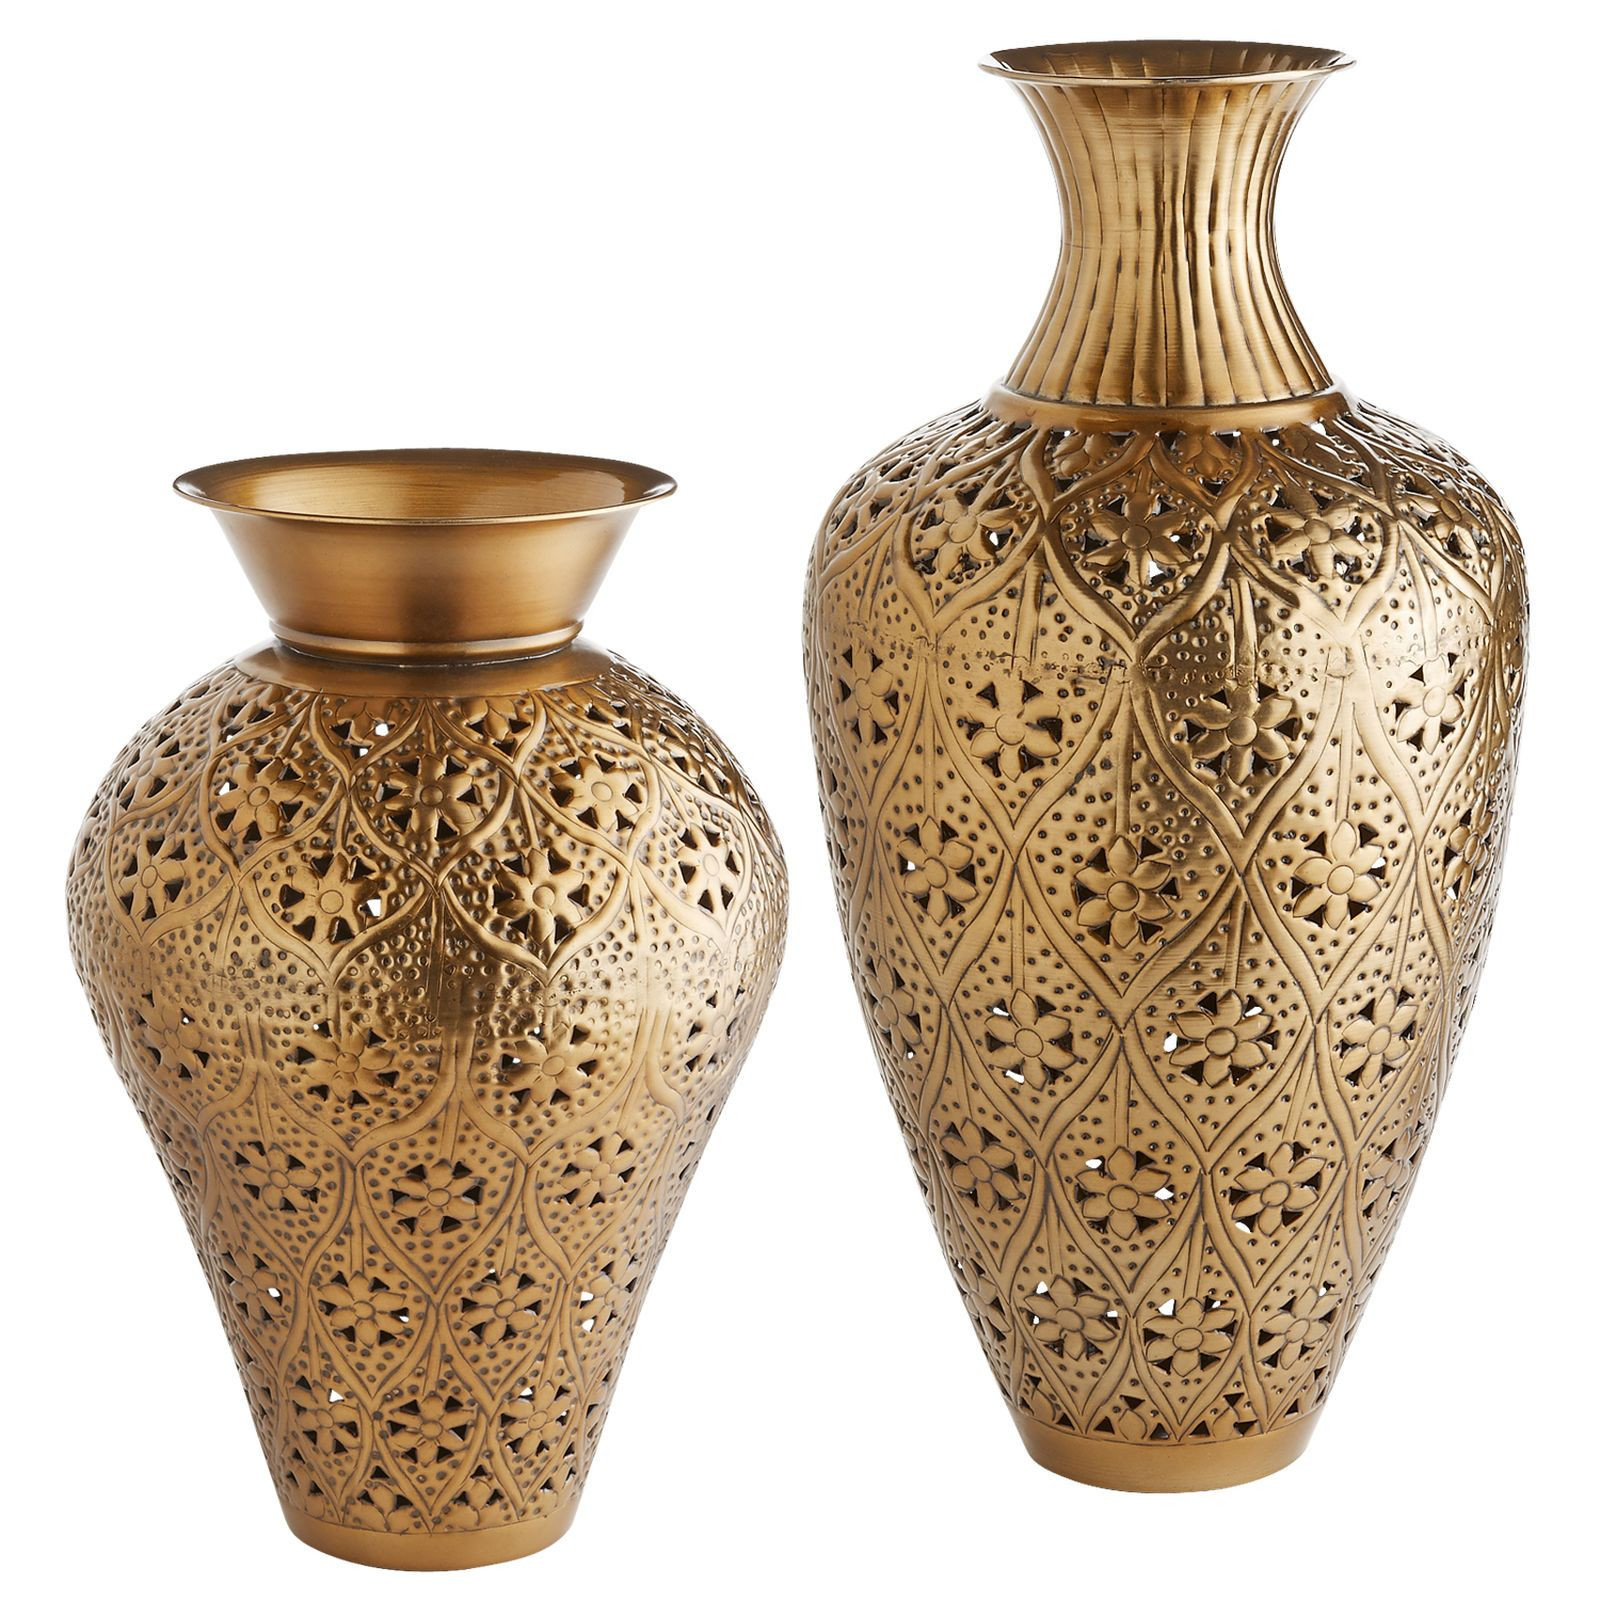 Pier One Large Vases Of Found the Perfect Additions to Your Diverse Collection Our for Found the Perfect Additions to Your Diverse Collection Our Unconventional Vases Evoke that Bohemian